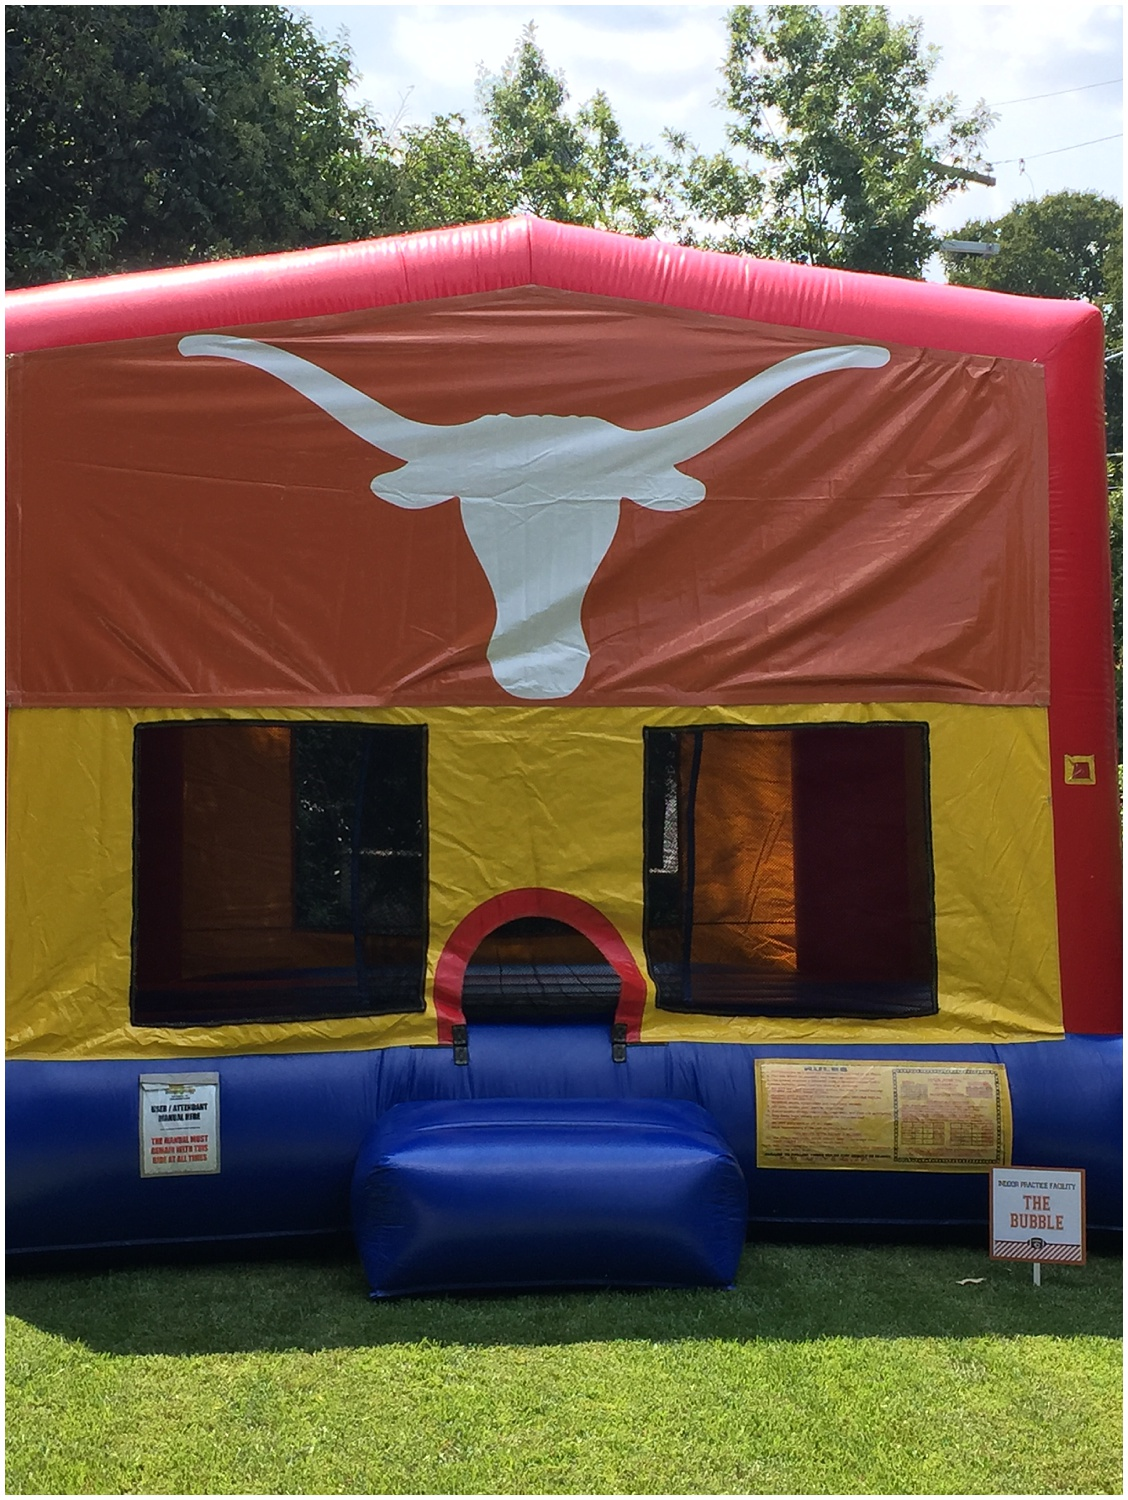 Tailgate_themedchildrensparty_AustinTX_0104.jpg